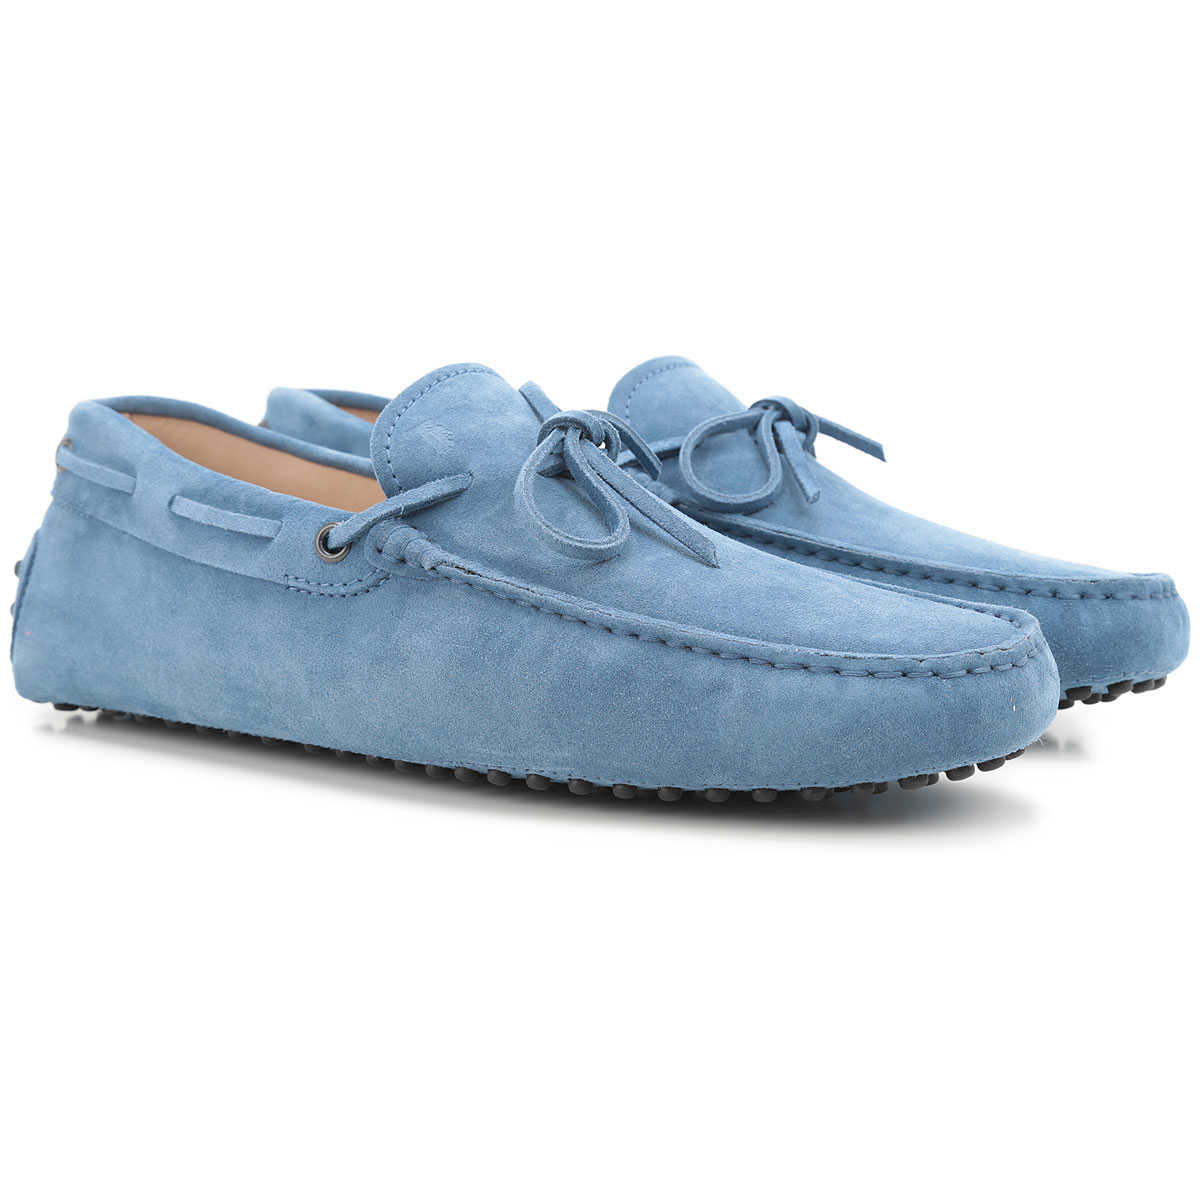 Tods Driver Loafer Shoes for Men Avio Blue Canada - GOOFASH - Mens LOAFERS